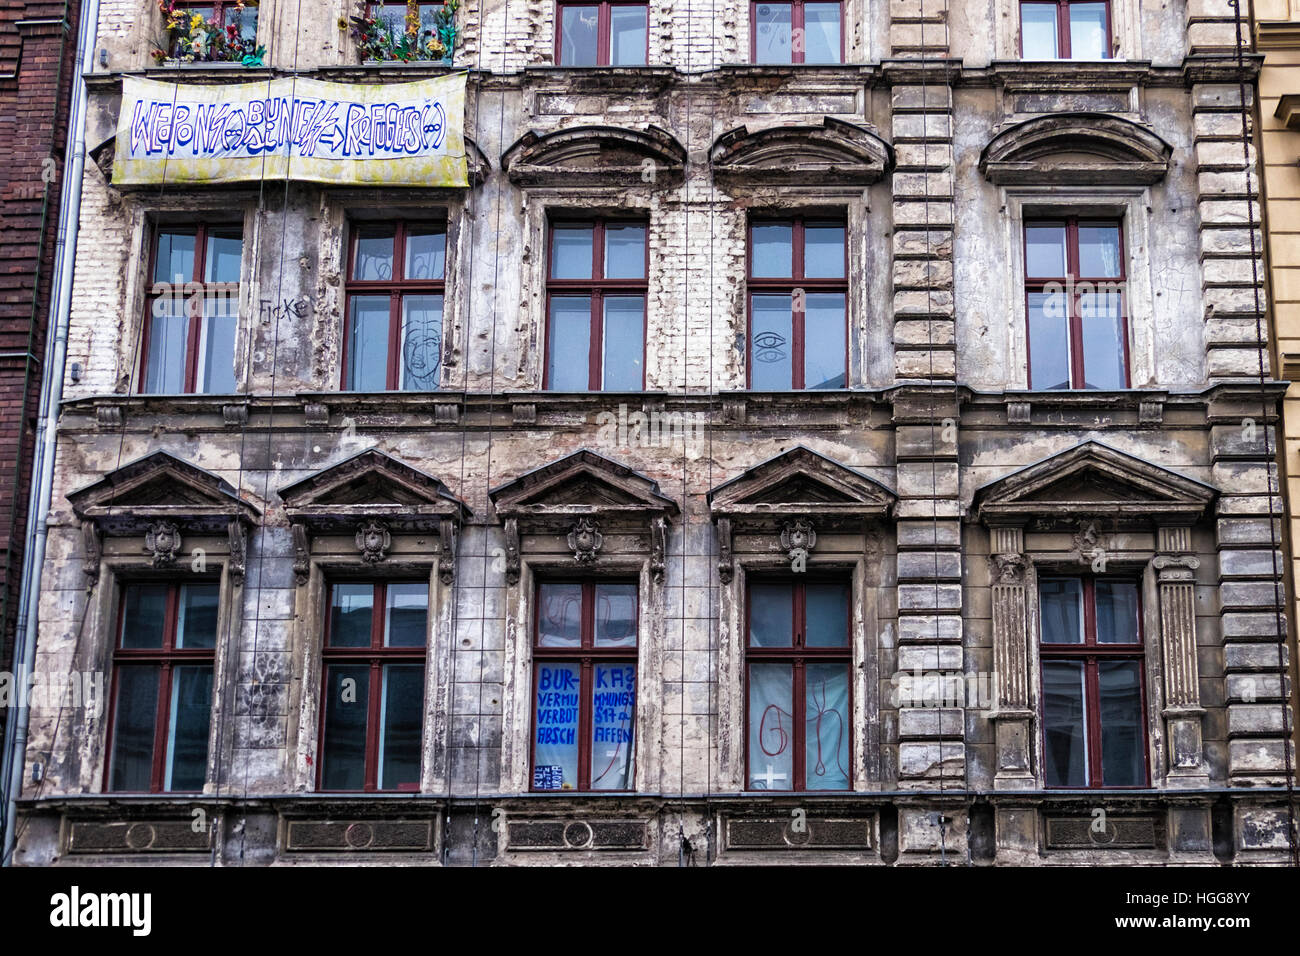 Berlin, Mitte. Old historic building needing refurbishment with political message on banner - Stock Image